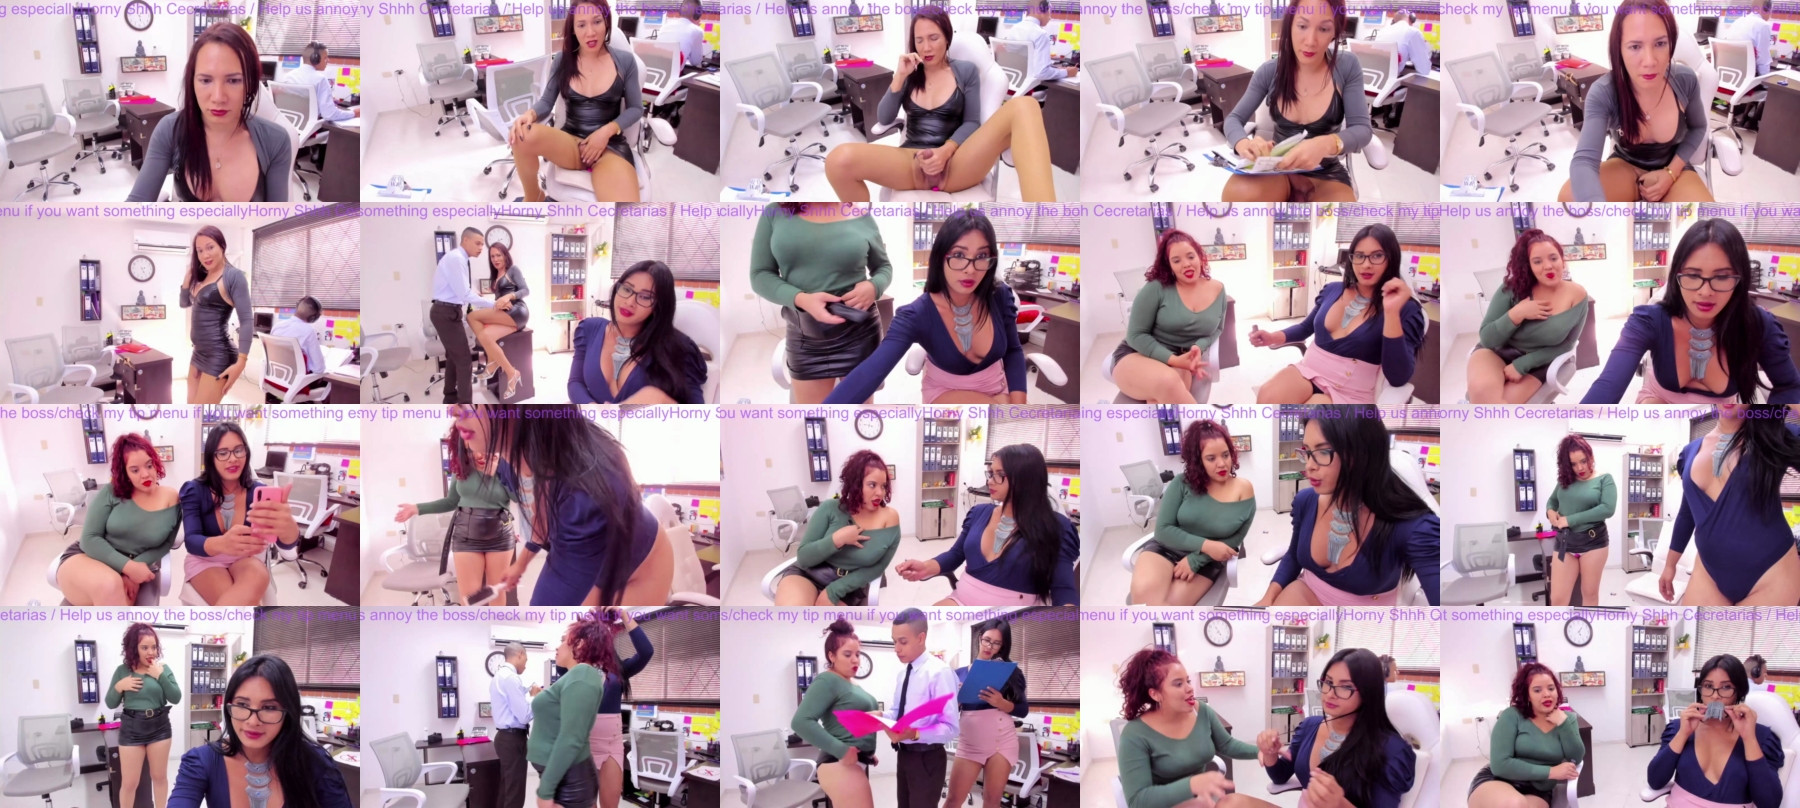 Franshesca_Sexdoll Recorded CAM SHOW @ Chaturbate 07-05-2021